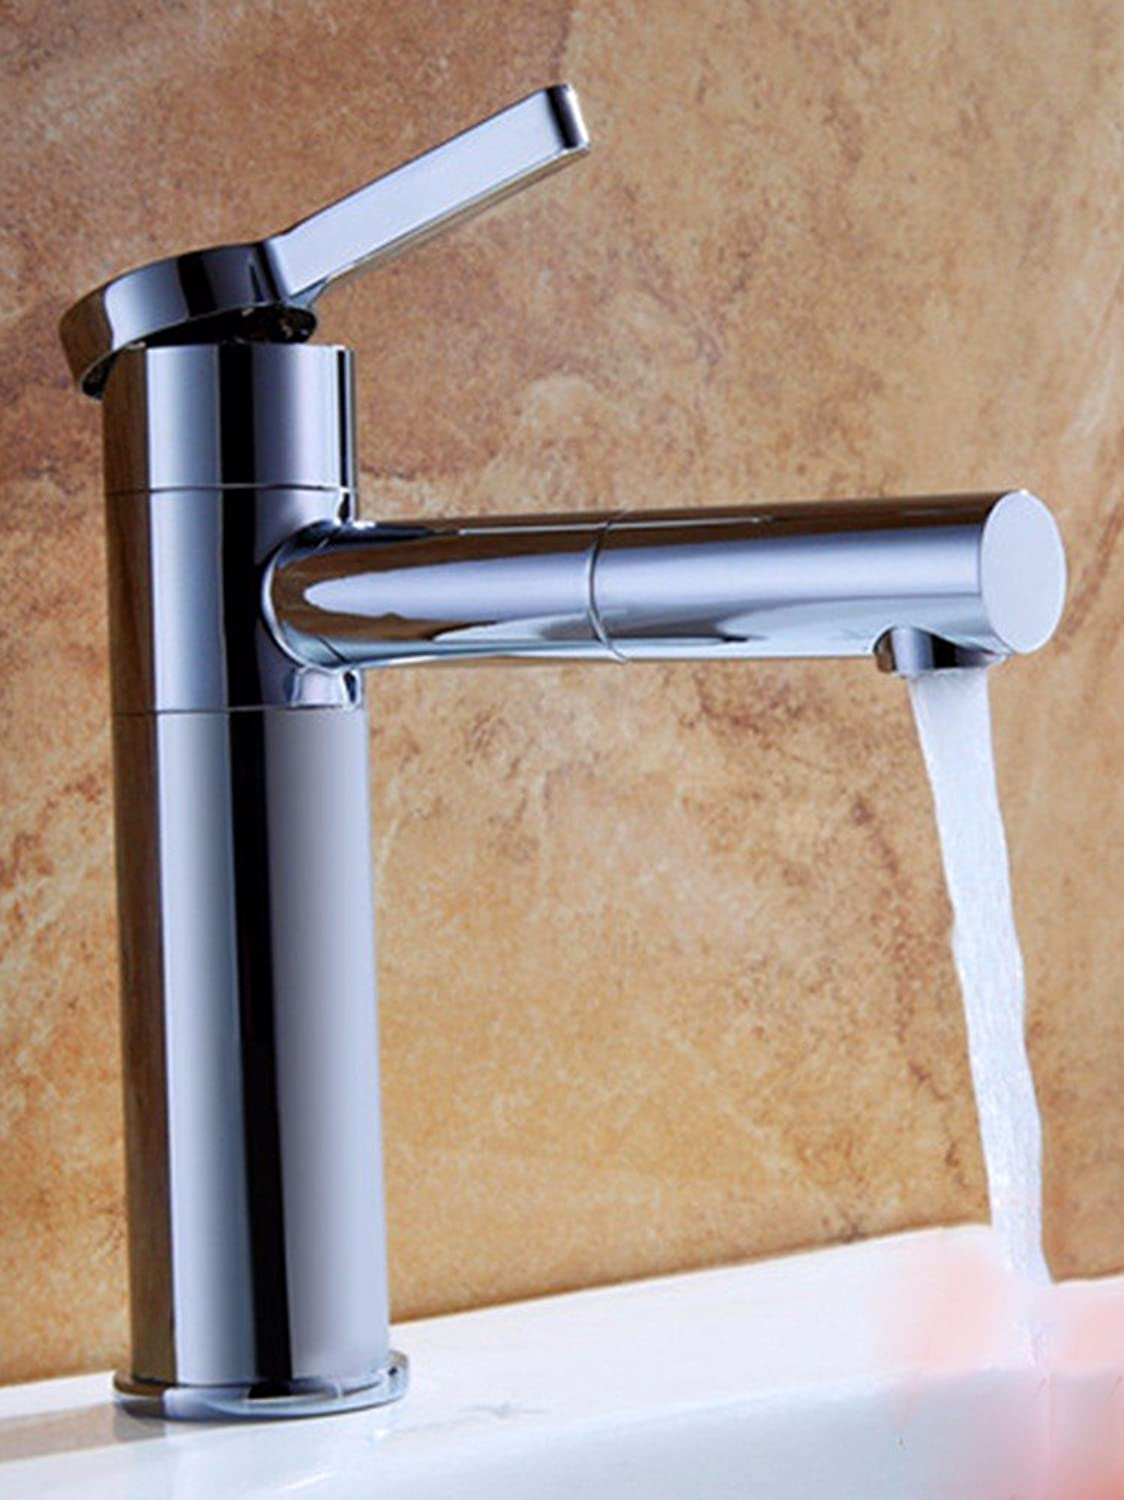 Hlluya Professional Sink Mixer Tap Kitchen Faucet Hot and cold, full of copper, basins, sinks, faucets